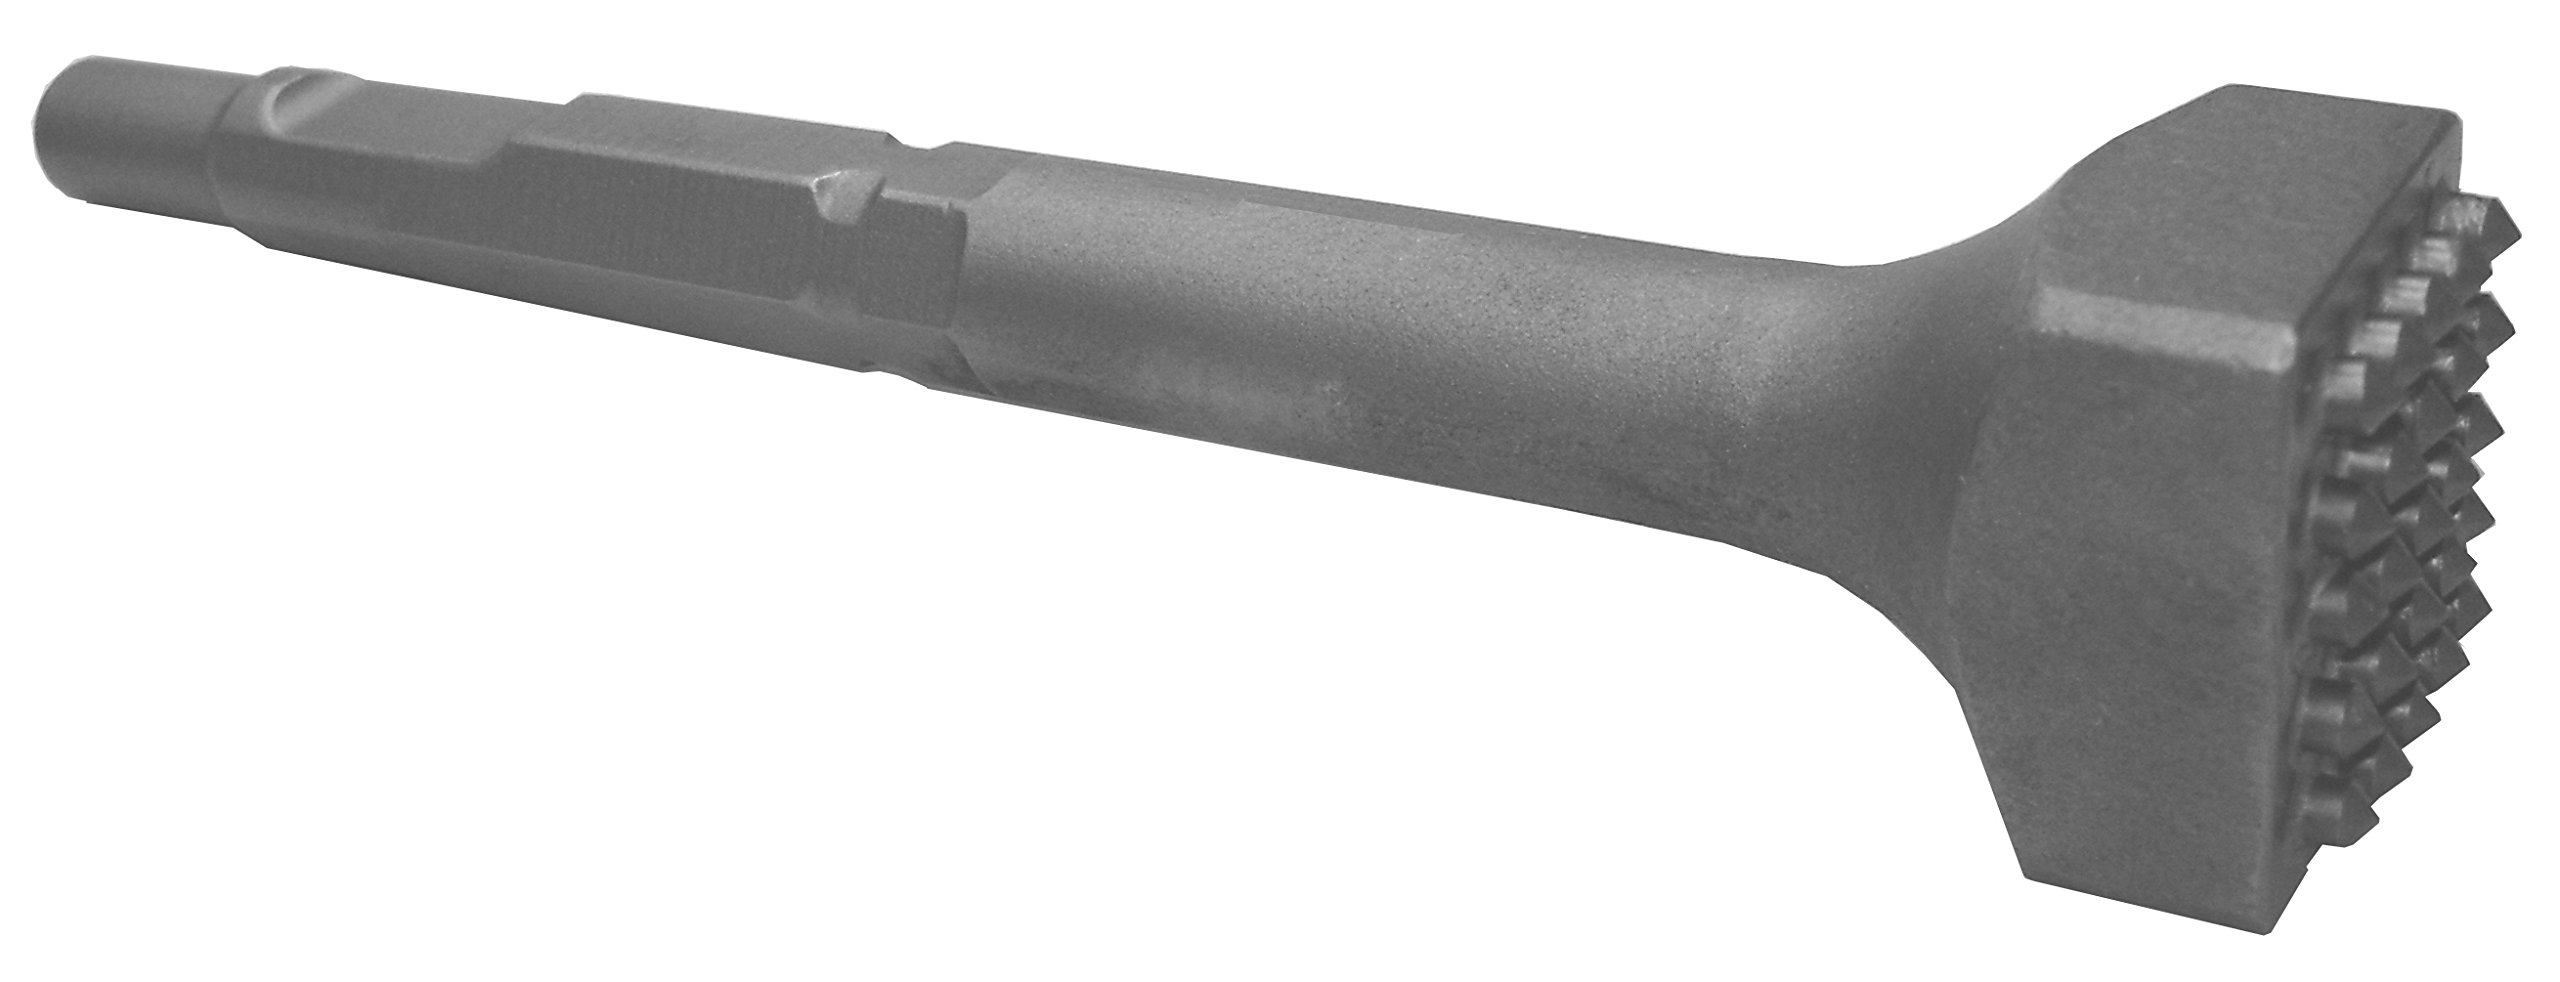 Champion Chisel, Spline or Rotary Shank Carbide Tipped Bushing Tool with 25 teeth